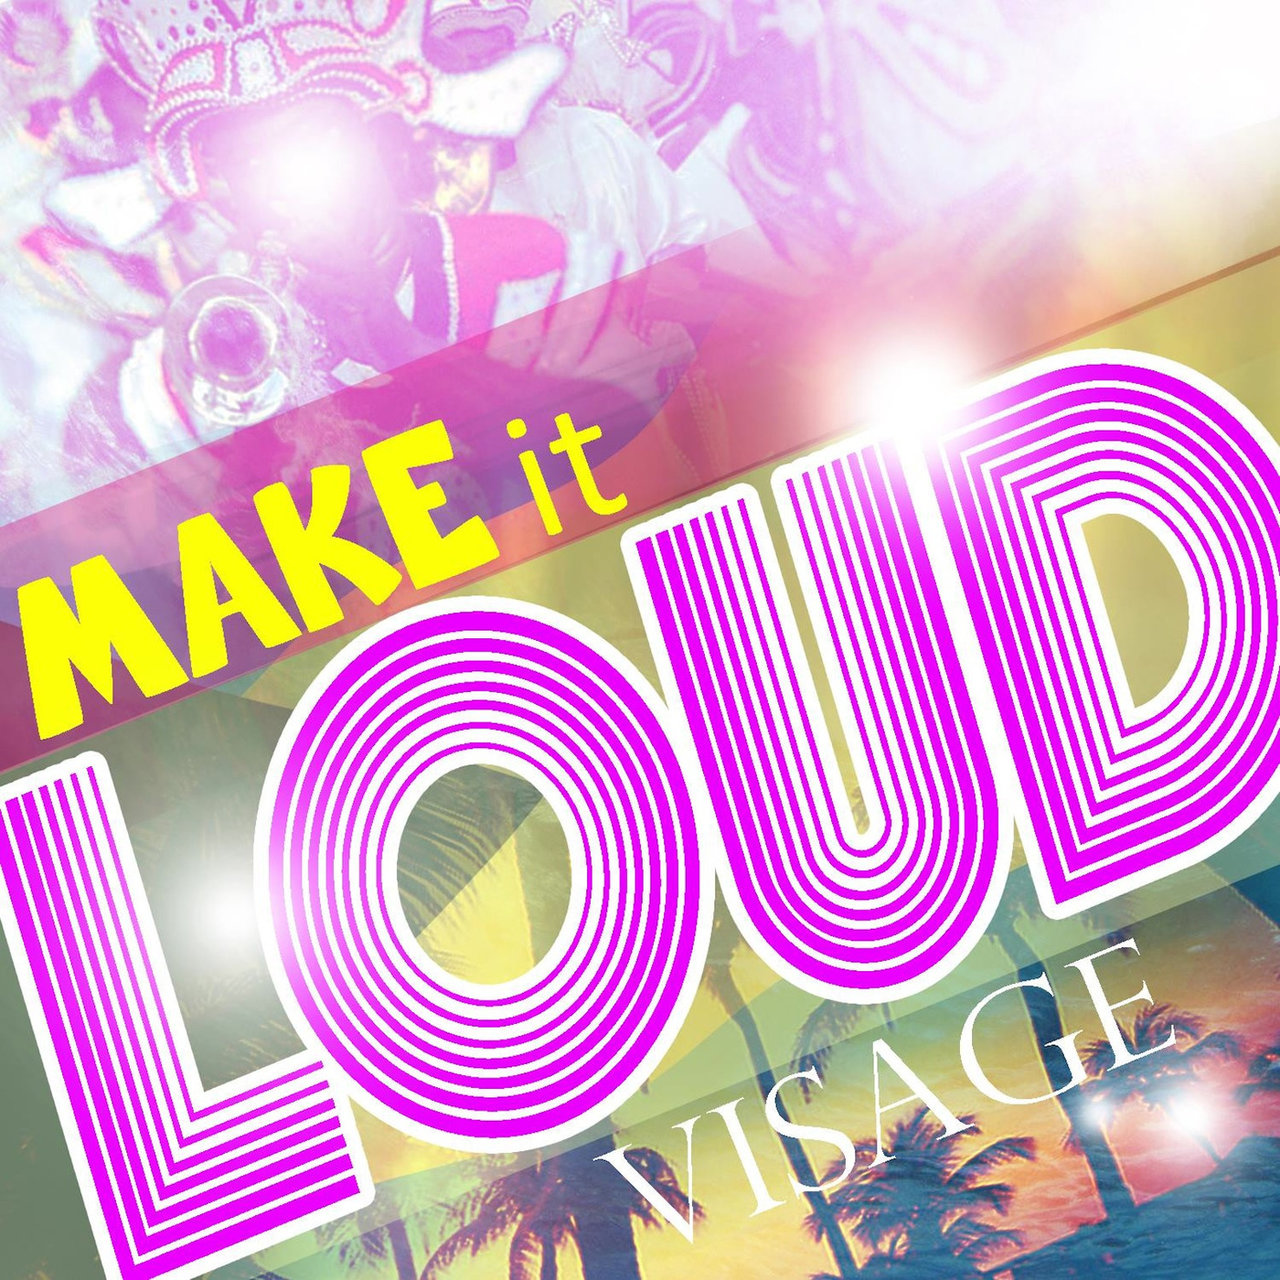 Make It Loud (feat. Wendi)